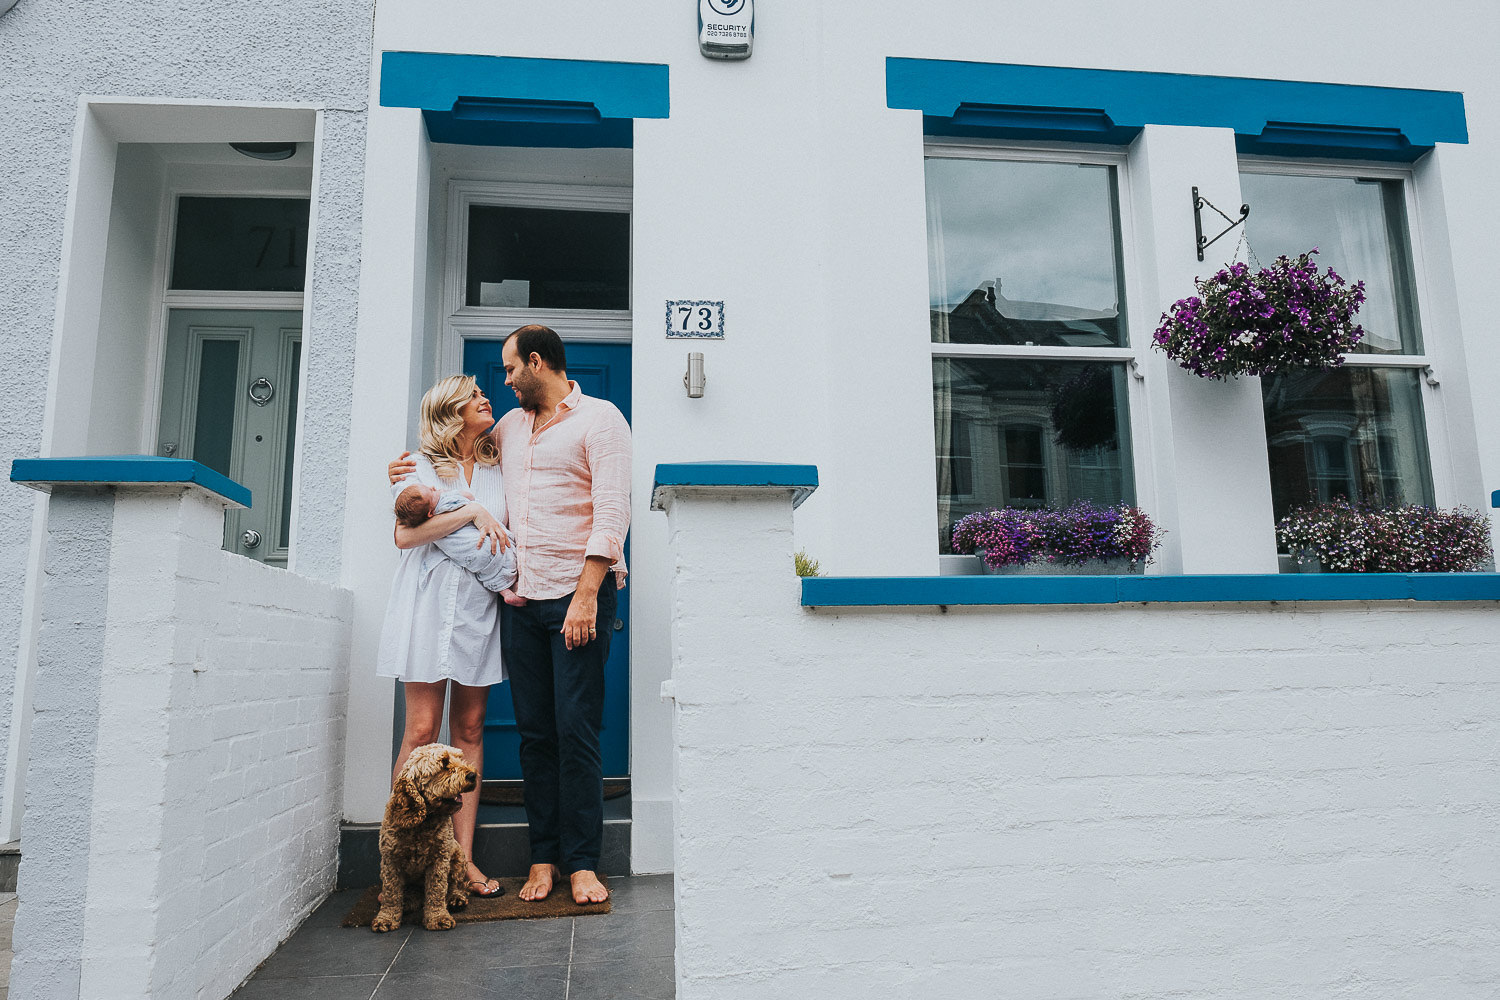 NEW PARENTS BABY AND DOG STANDING OUTSIDE THEIR HOME FULHAM NEWBORN PHOTOGRAPHER